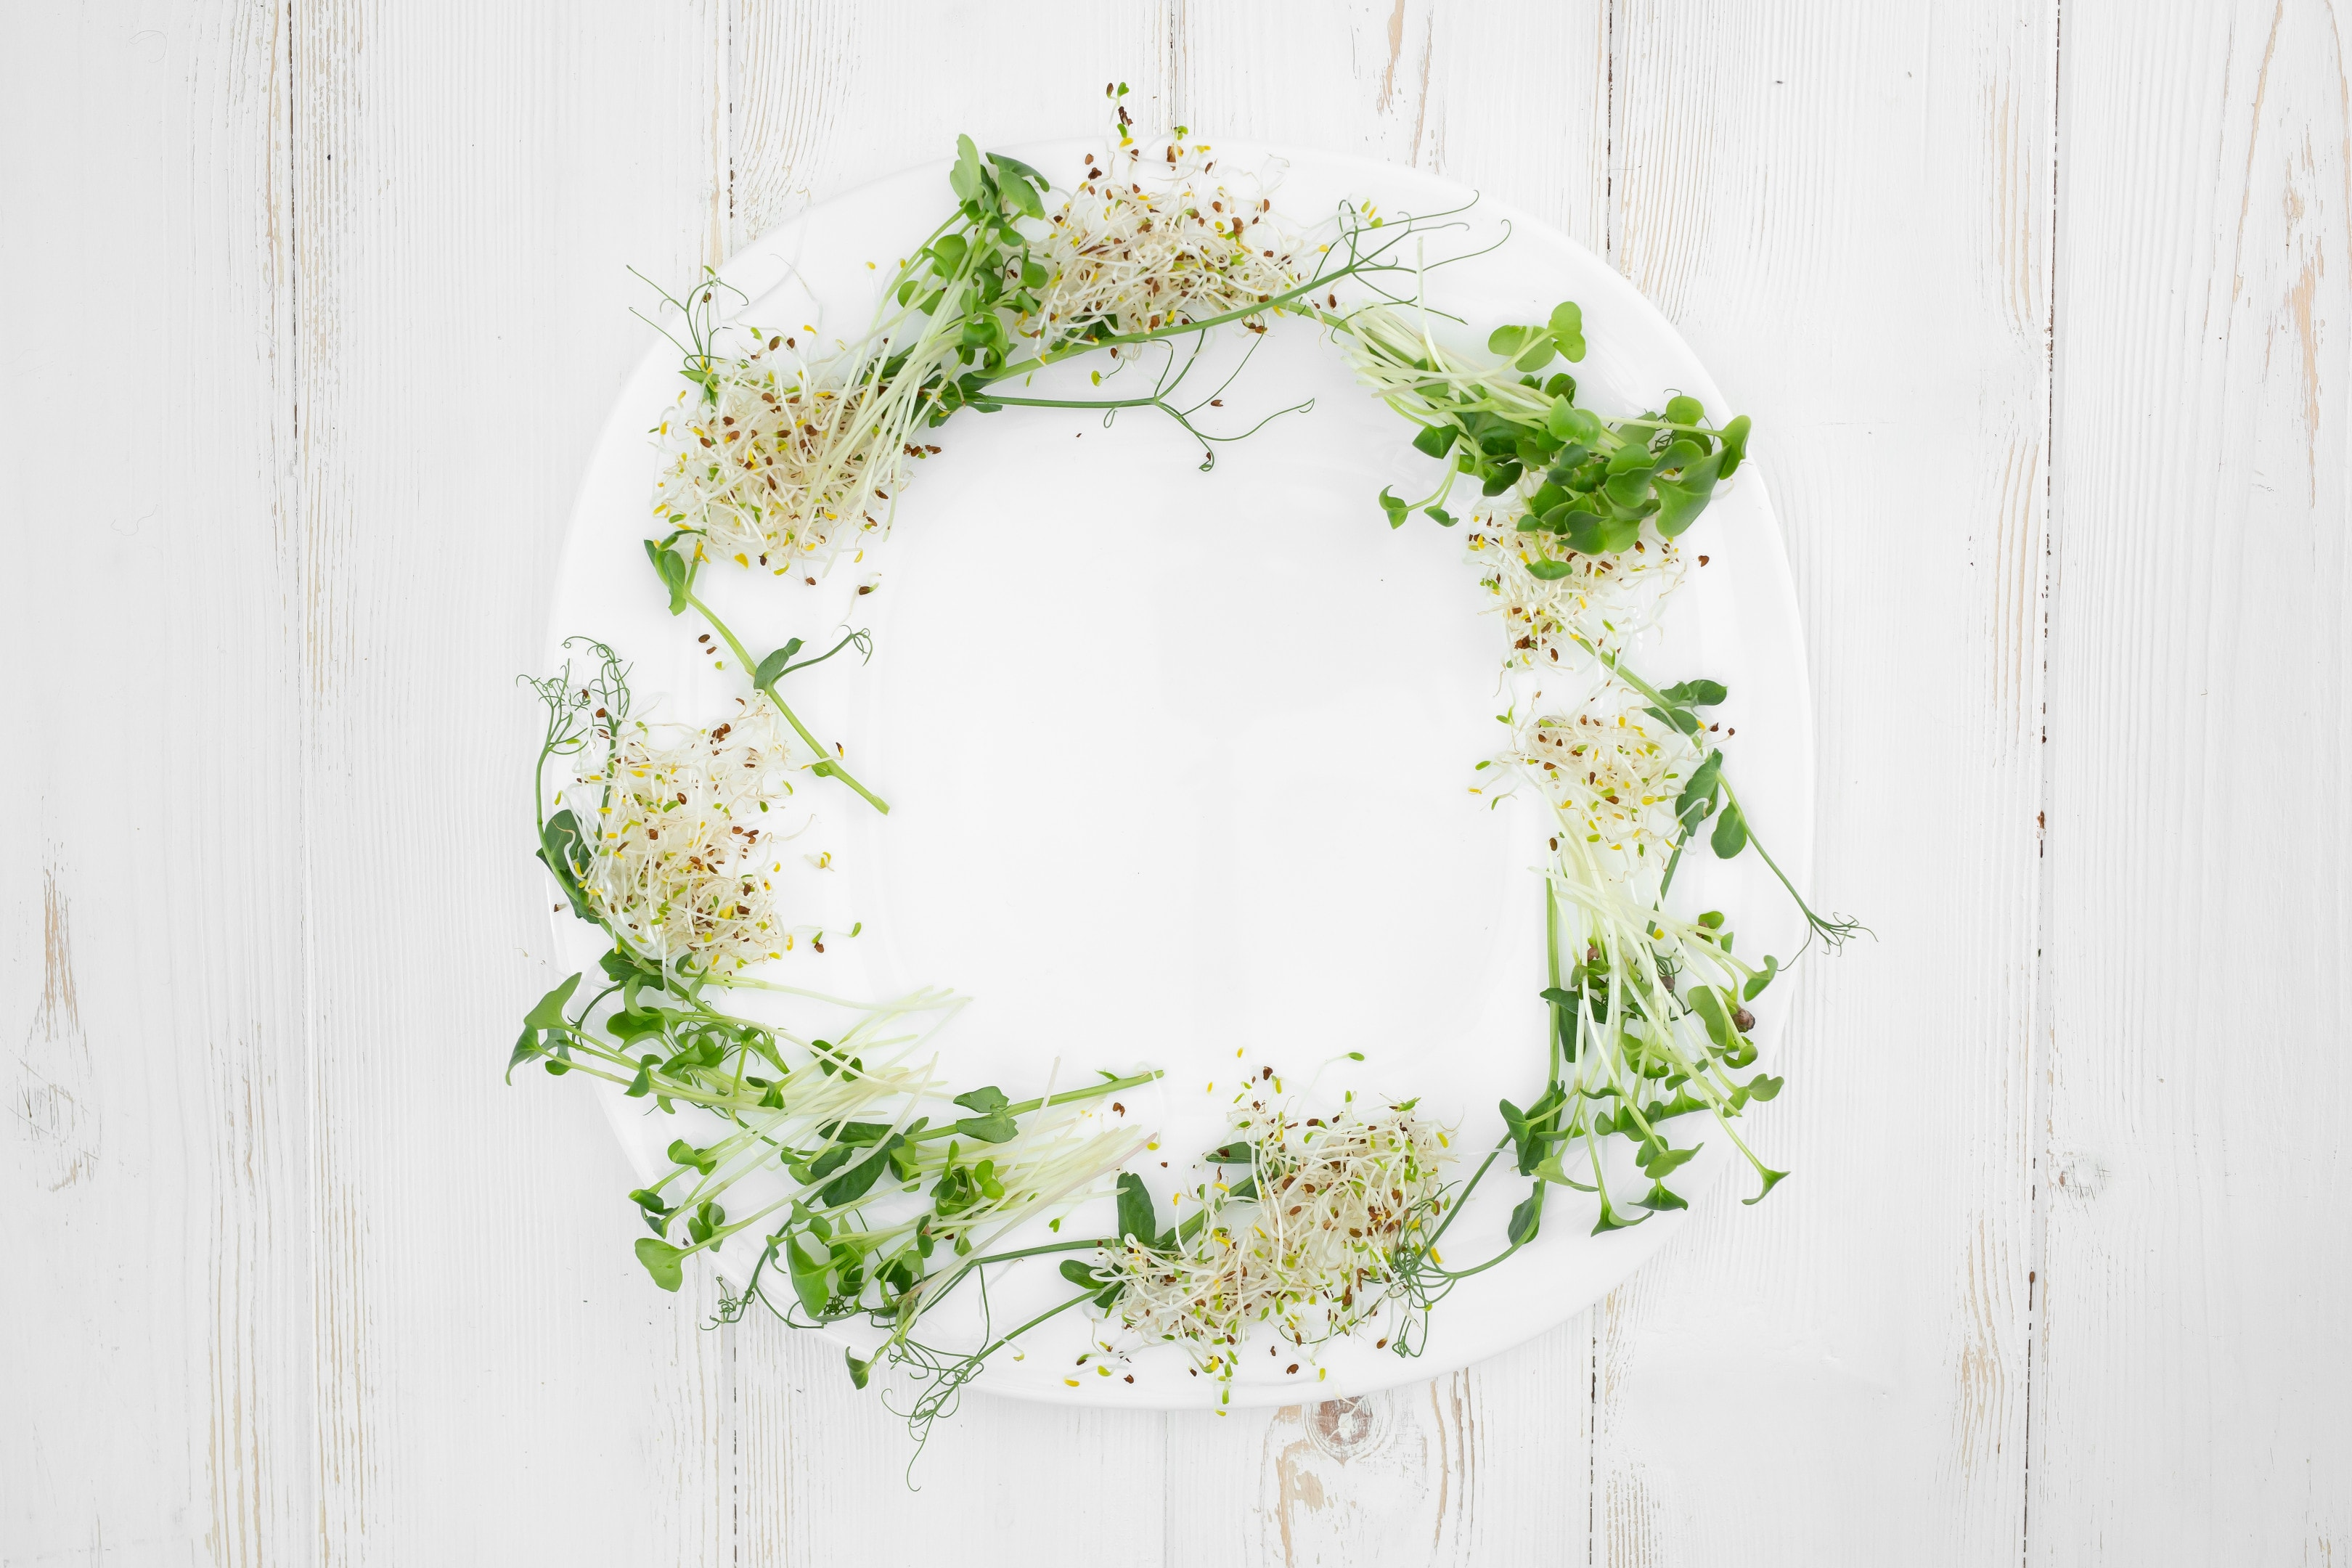 White Plate With Pea Radish and Alfalfa Sprouts